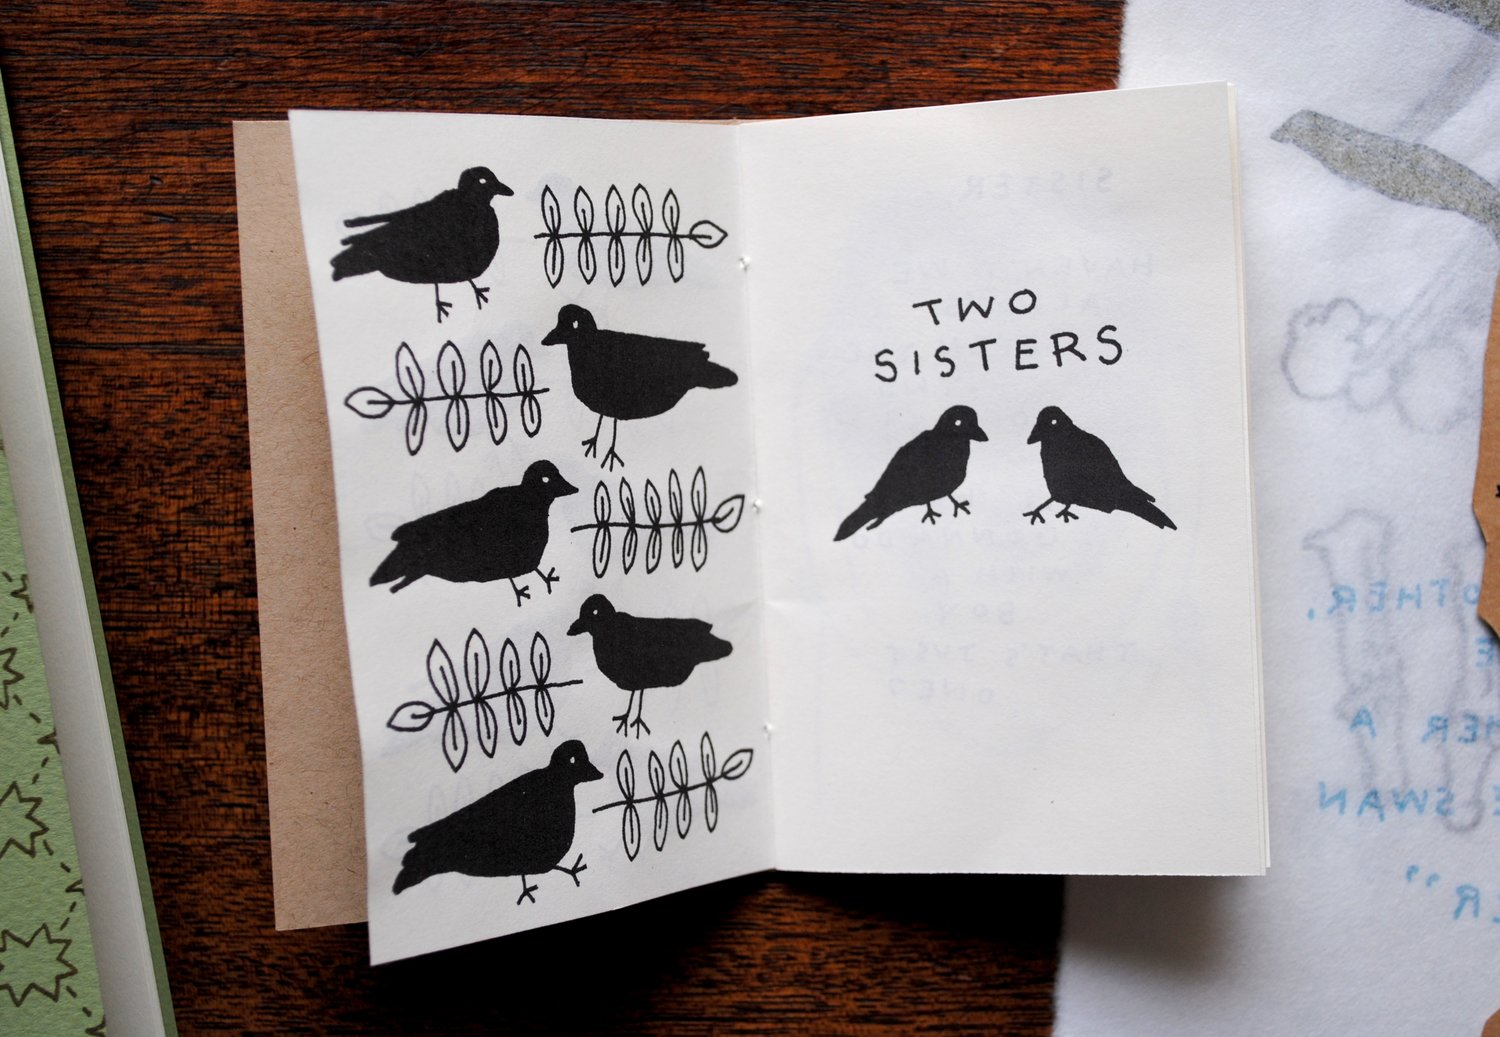 Two Sisters by Laura K. Watson